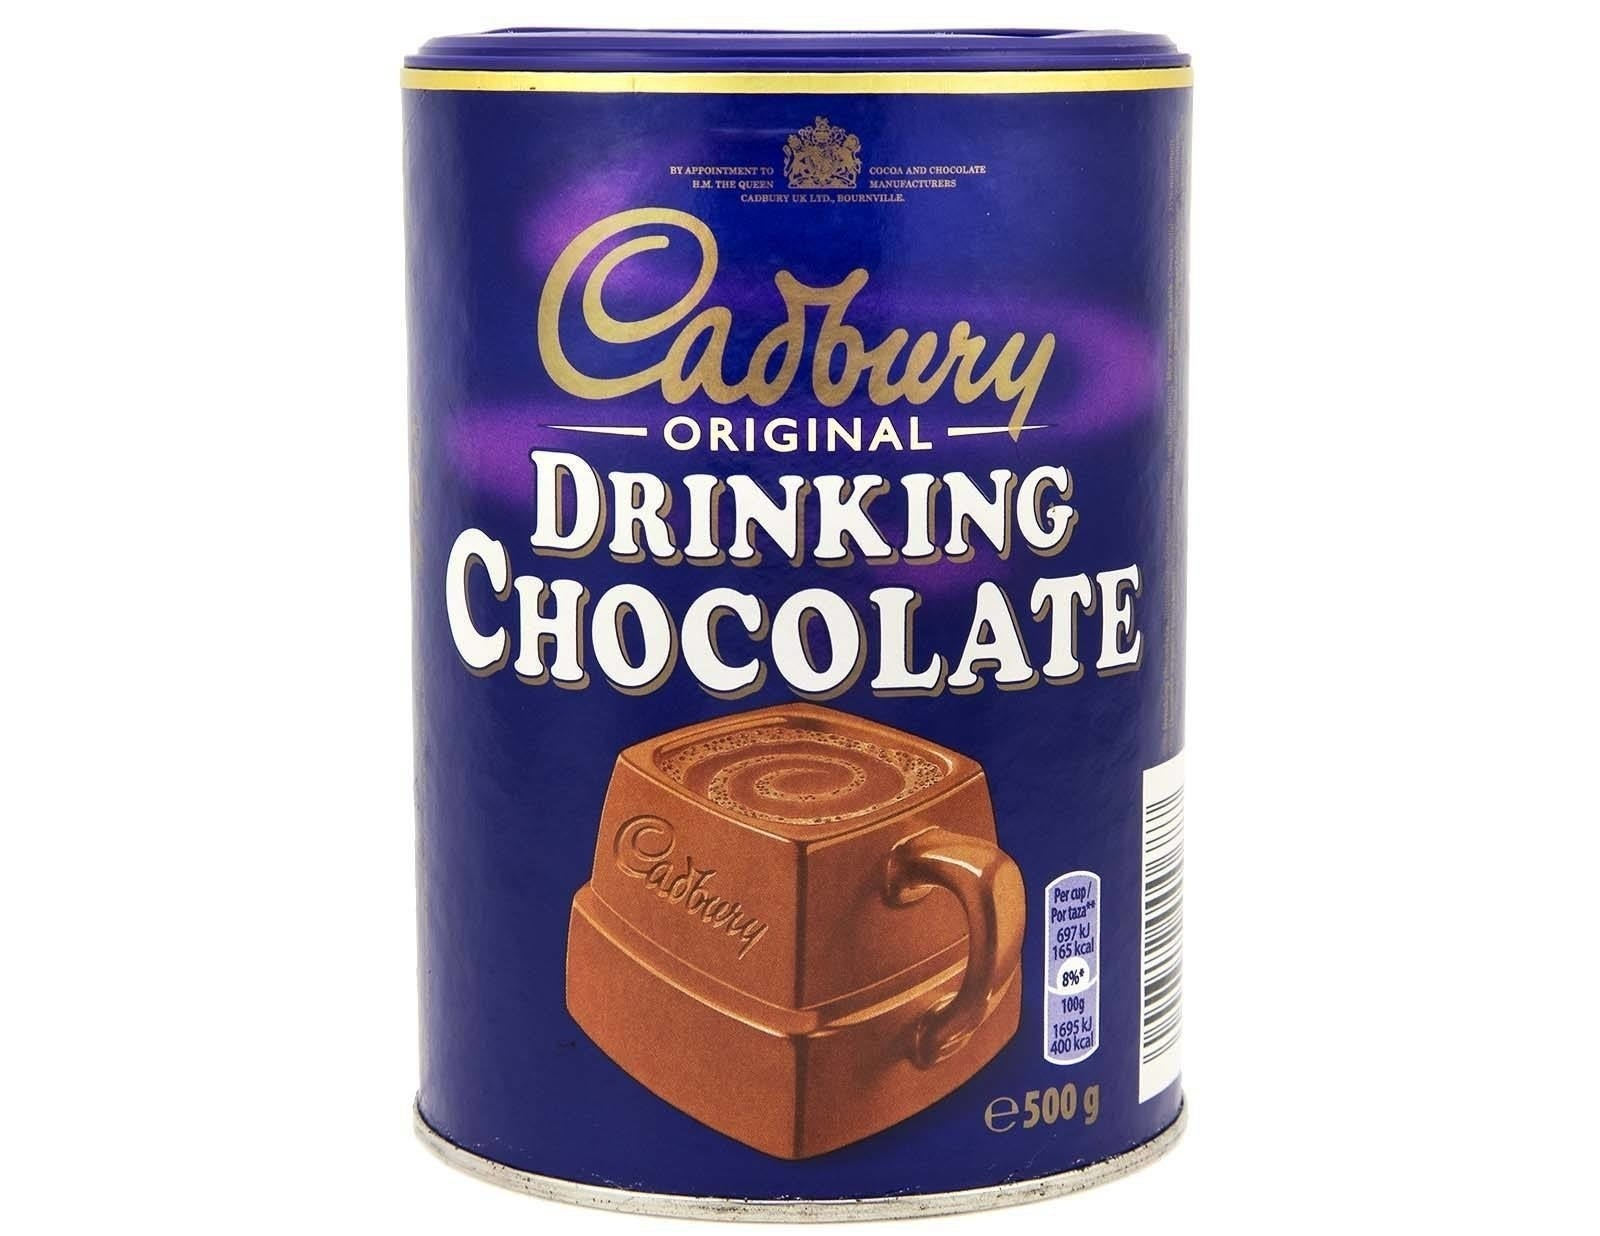 The canister of drinking chocolate